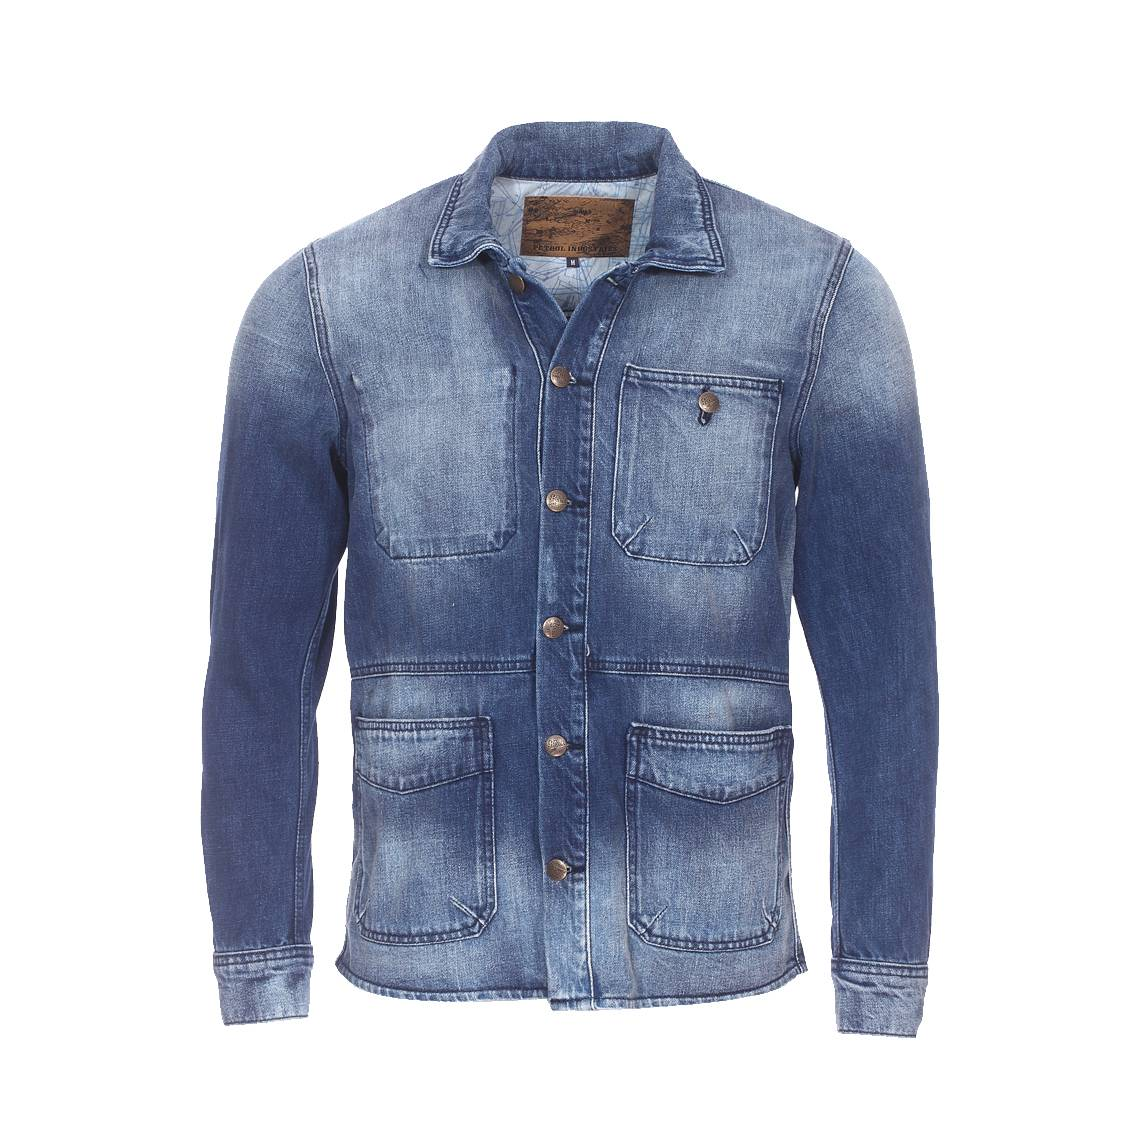 Veste en jean  medium steel bleu